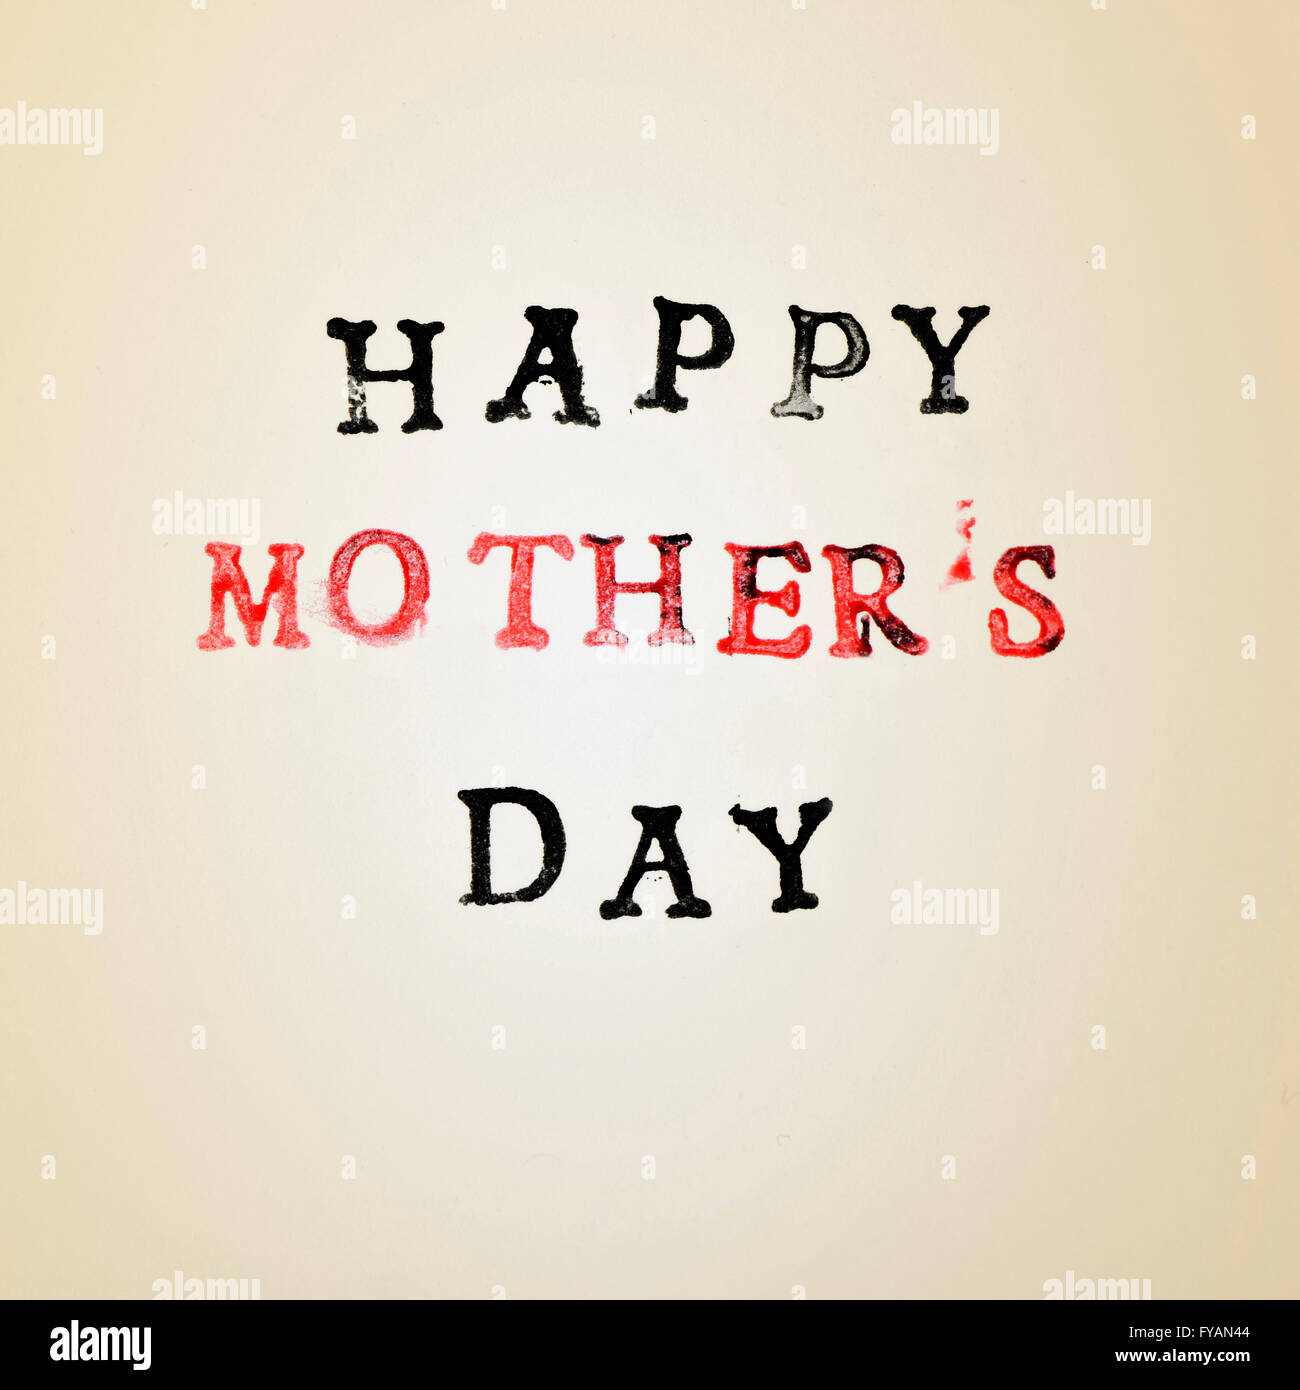 the text happy mothers day printed in black and red in a beige gradient background - Stock Image